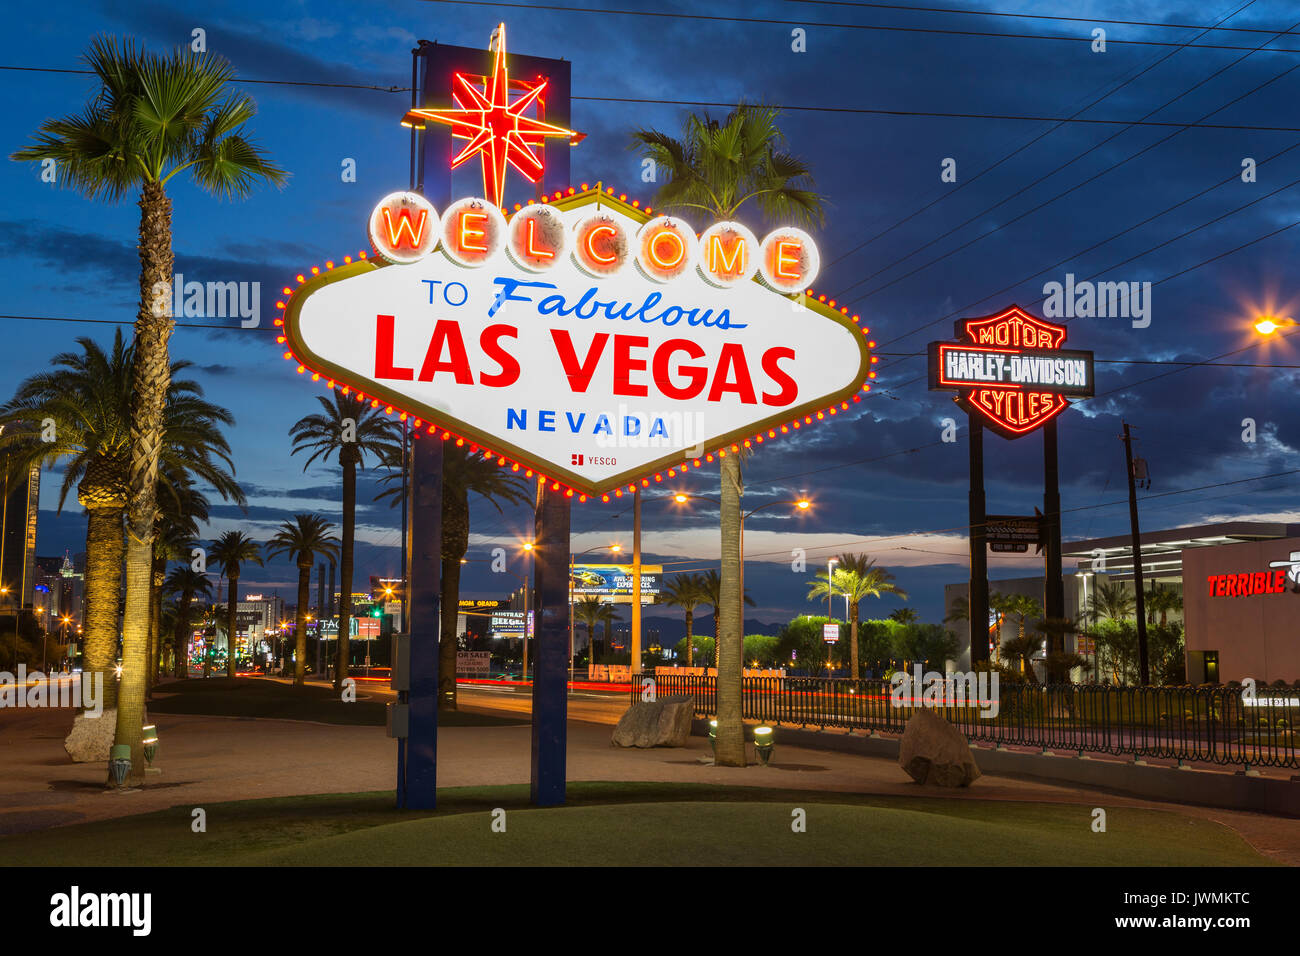 The iconic 'Welcome to Fabulous Las Vegas' neon sign greets visitors to Las Vegas traveling north on the Las Vegas strip. - Stock Image